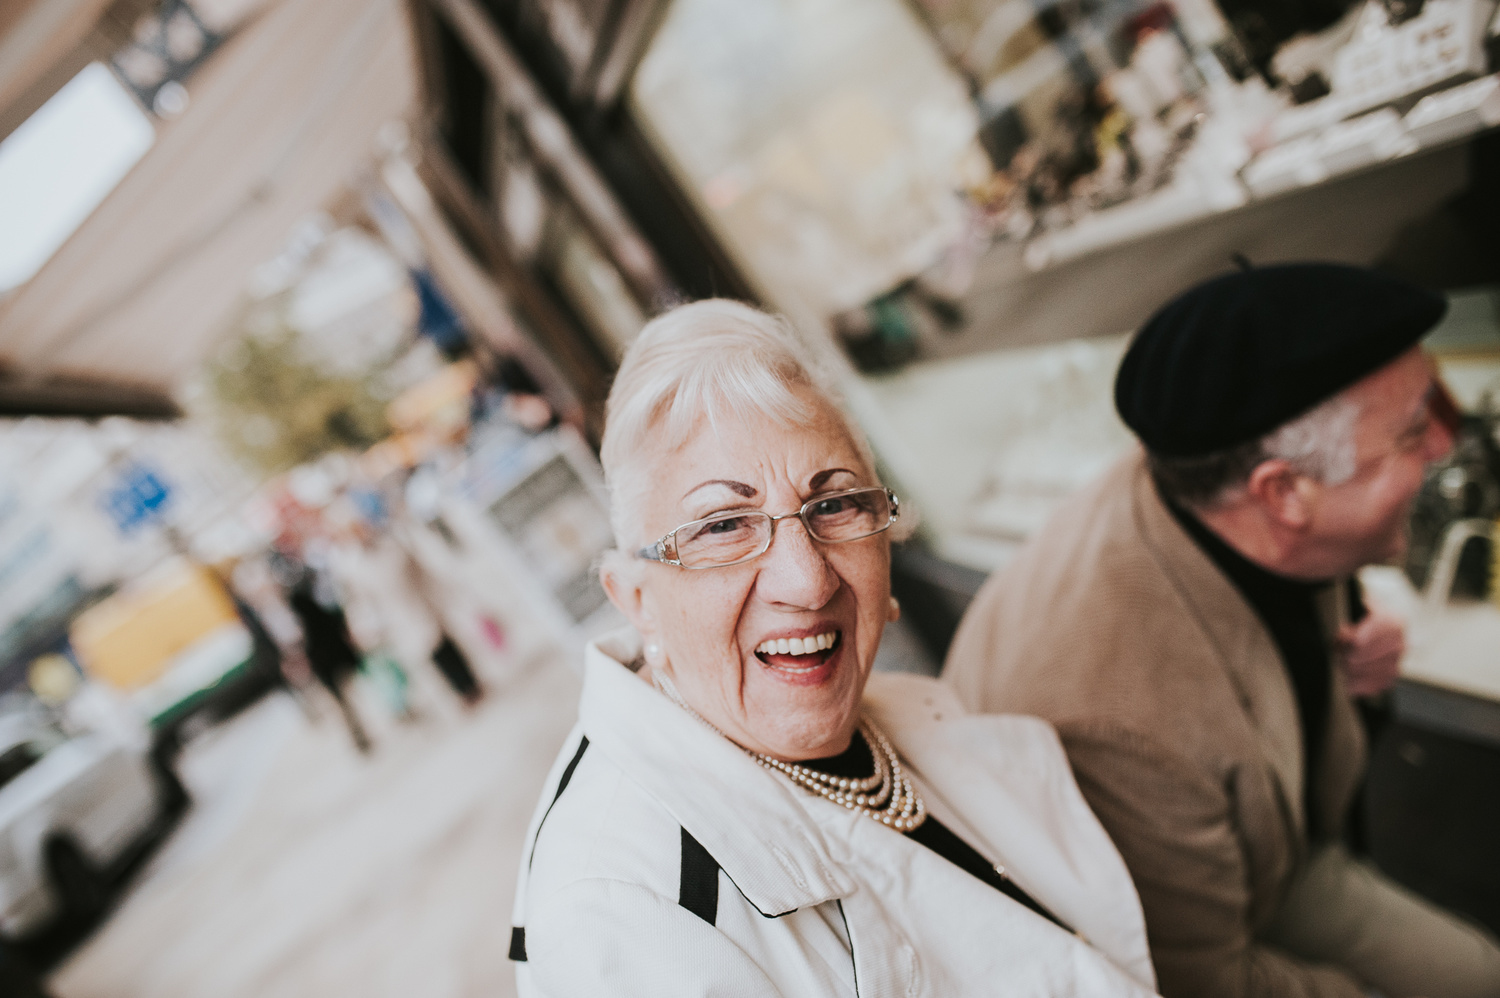 An older woman with glasses, smiling.